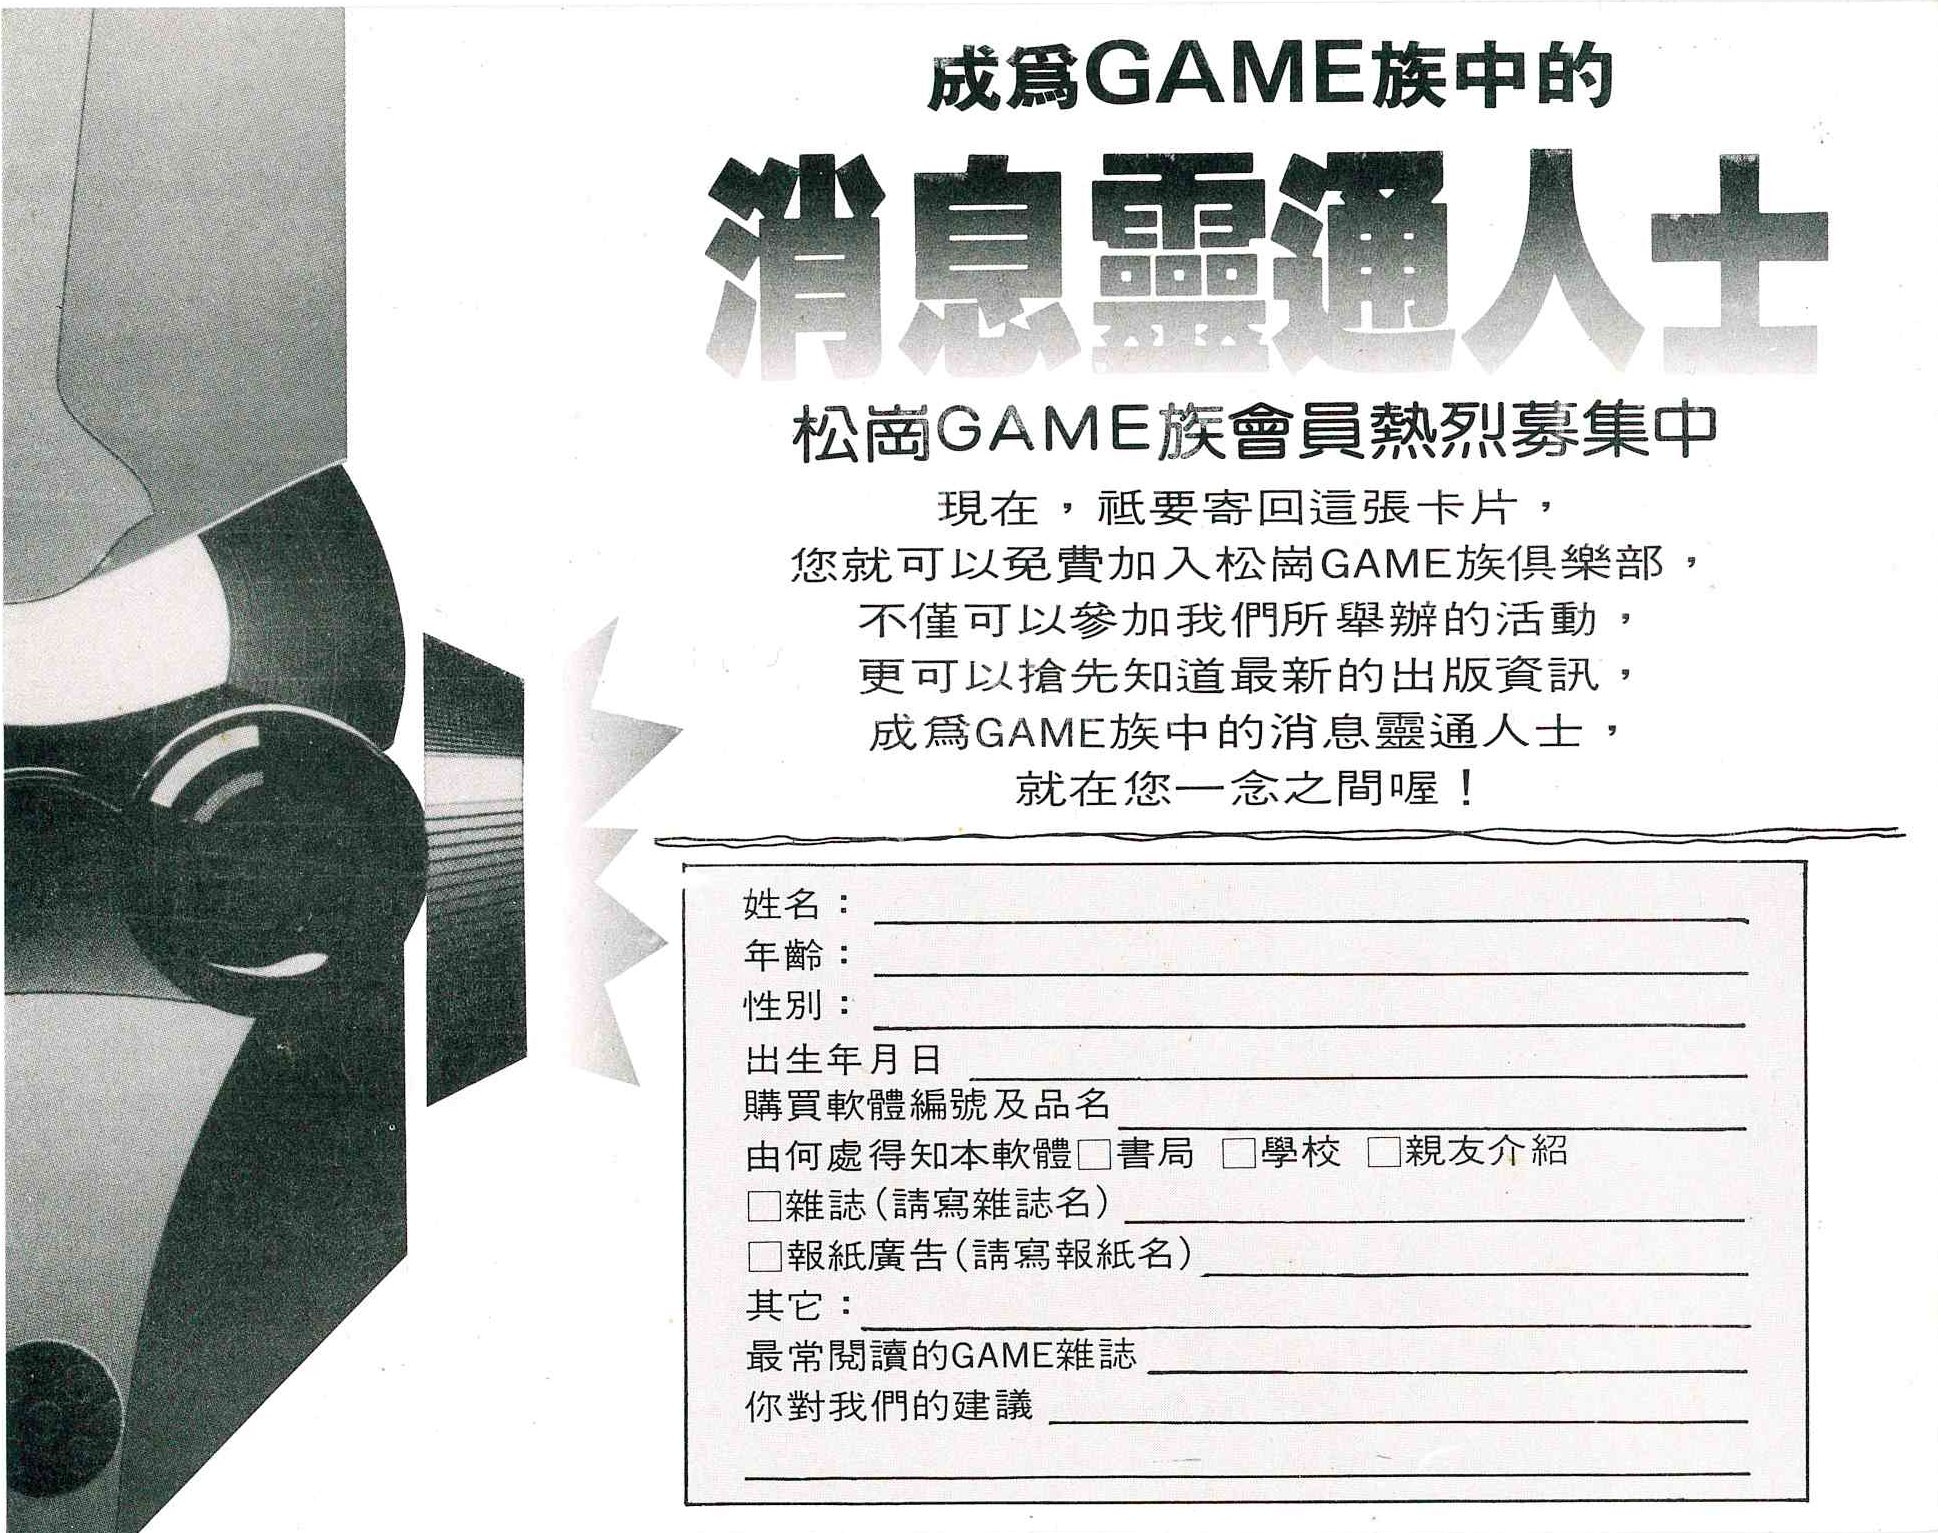 Game - Dungeon Master - CN - PC - Registration Card - Front - Scan